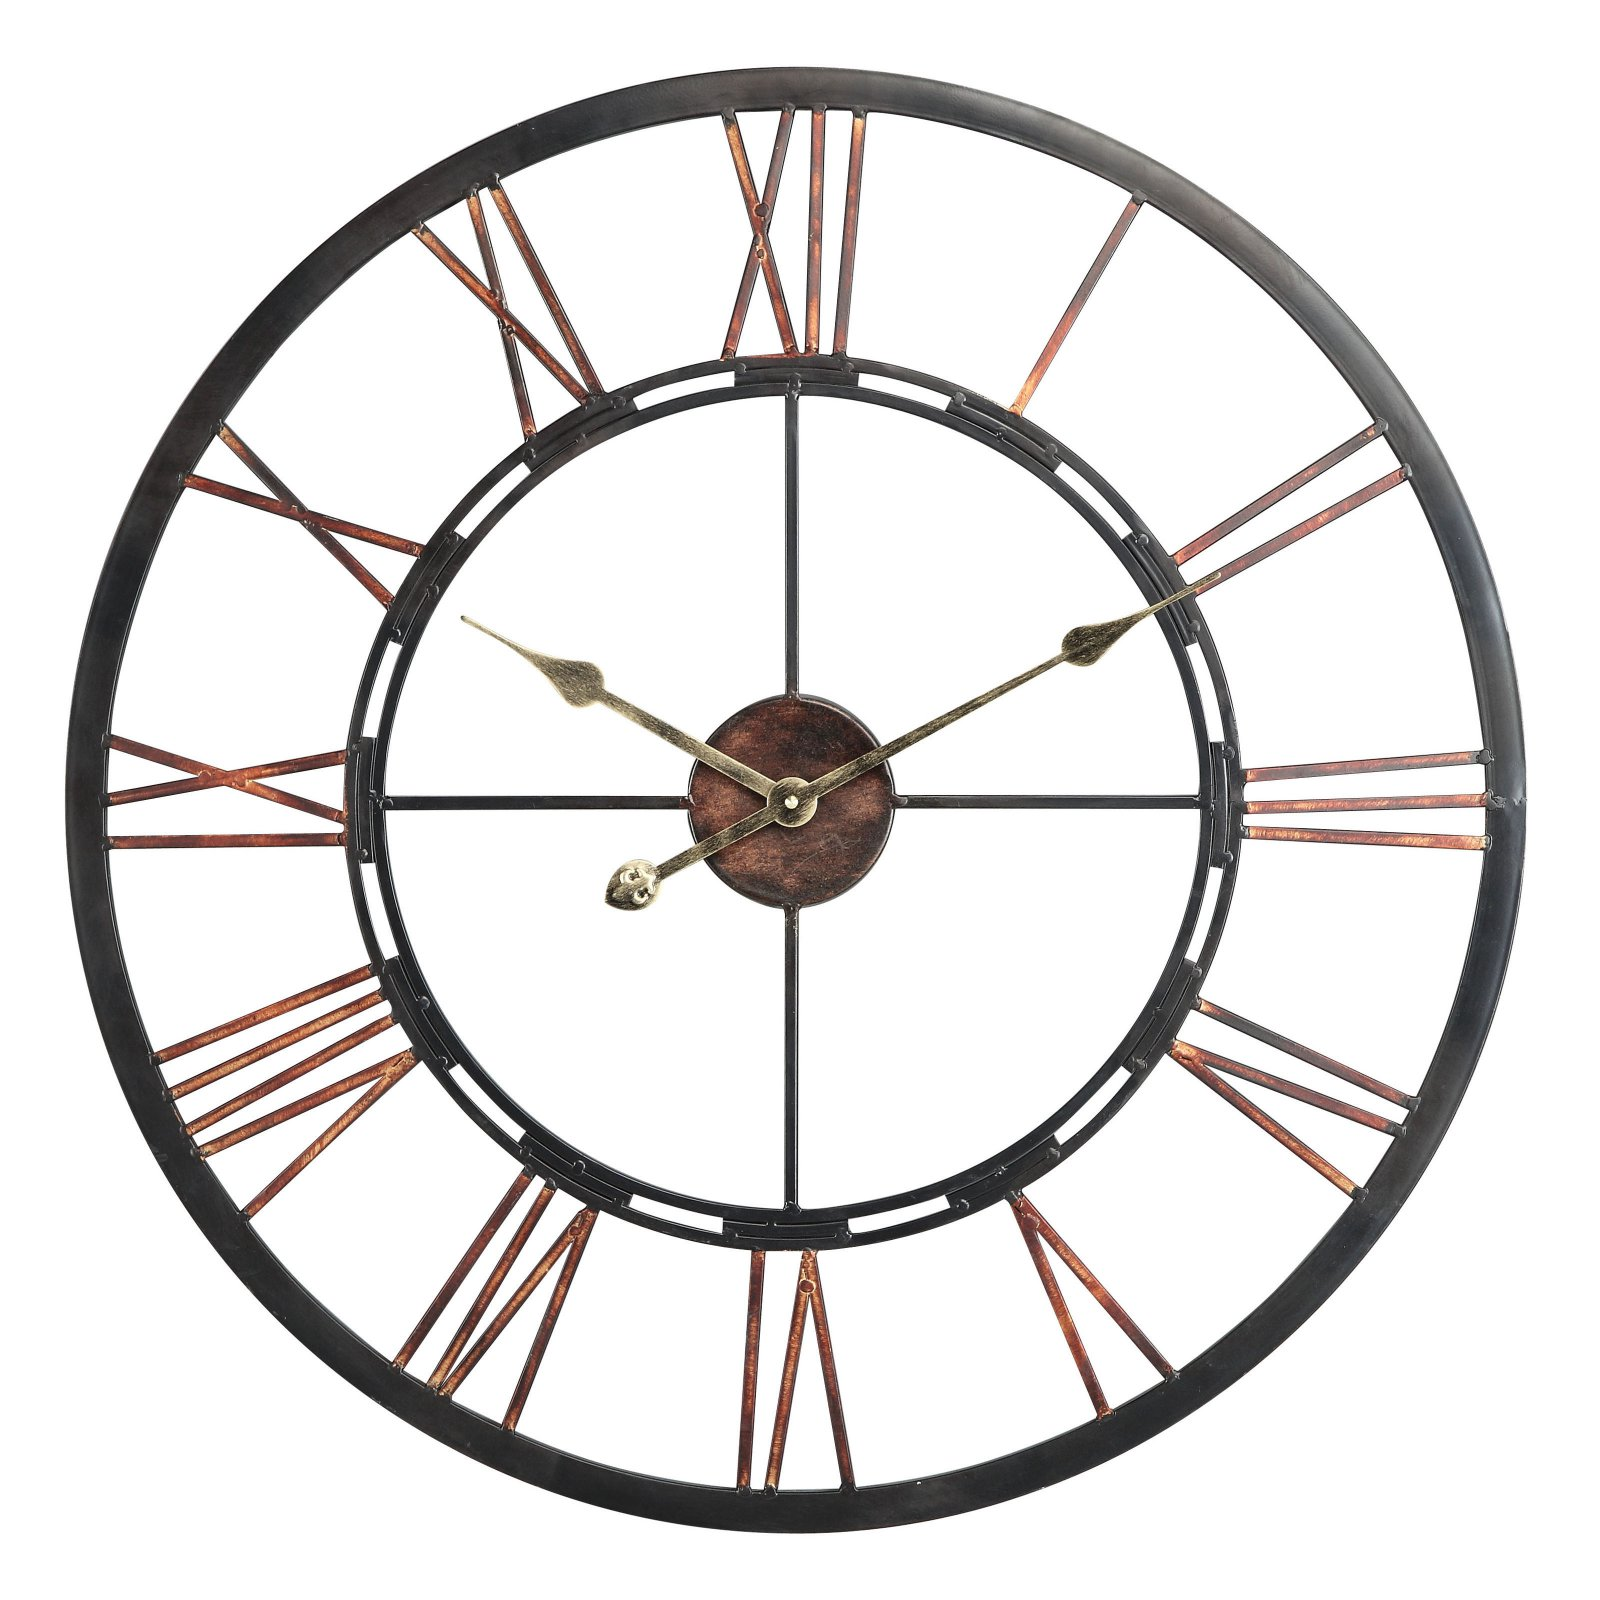 Mallory Oversized Wall Clock - 27.5 diam. In.